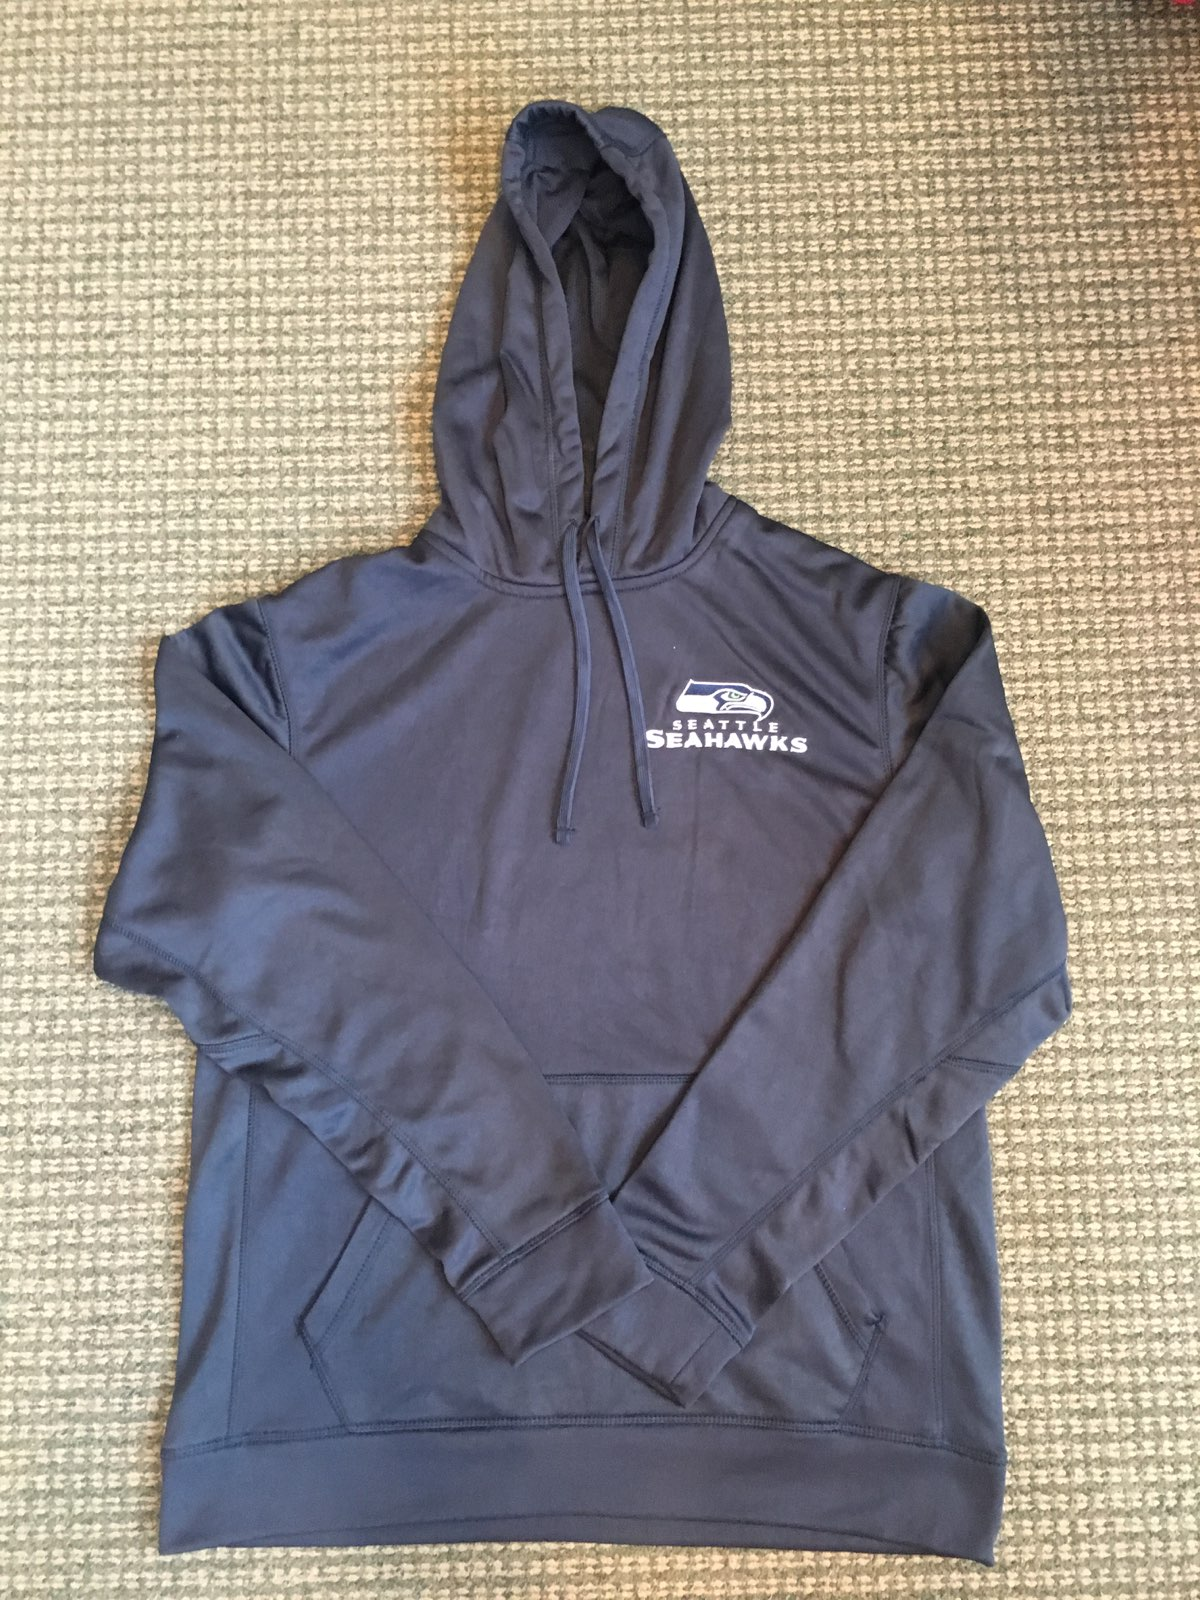 Seahawks Dunbrooke Hoodie Navy , 100% Polyester Size Small